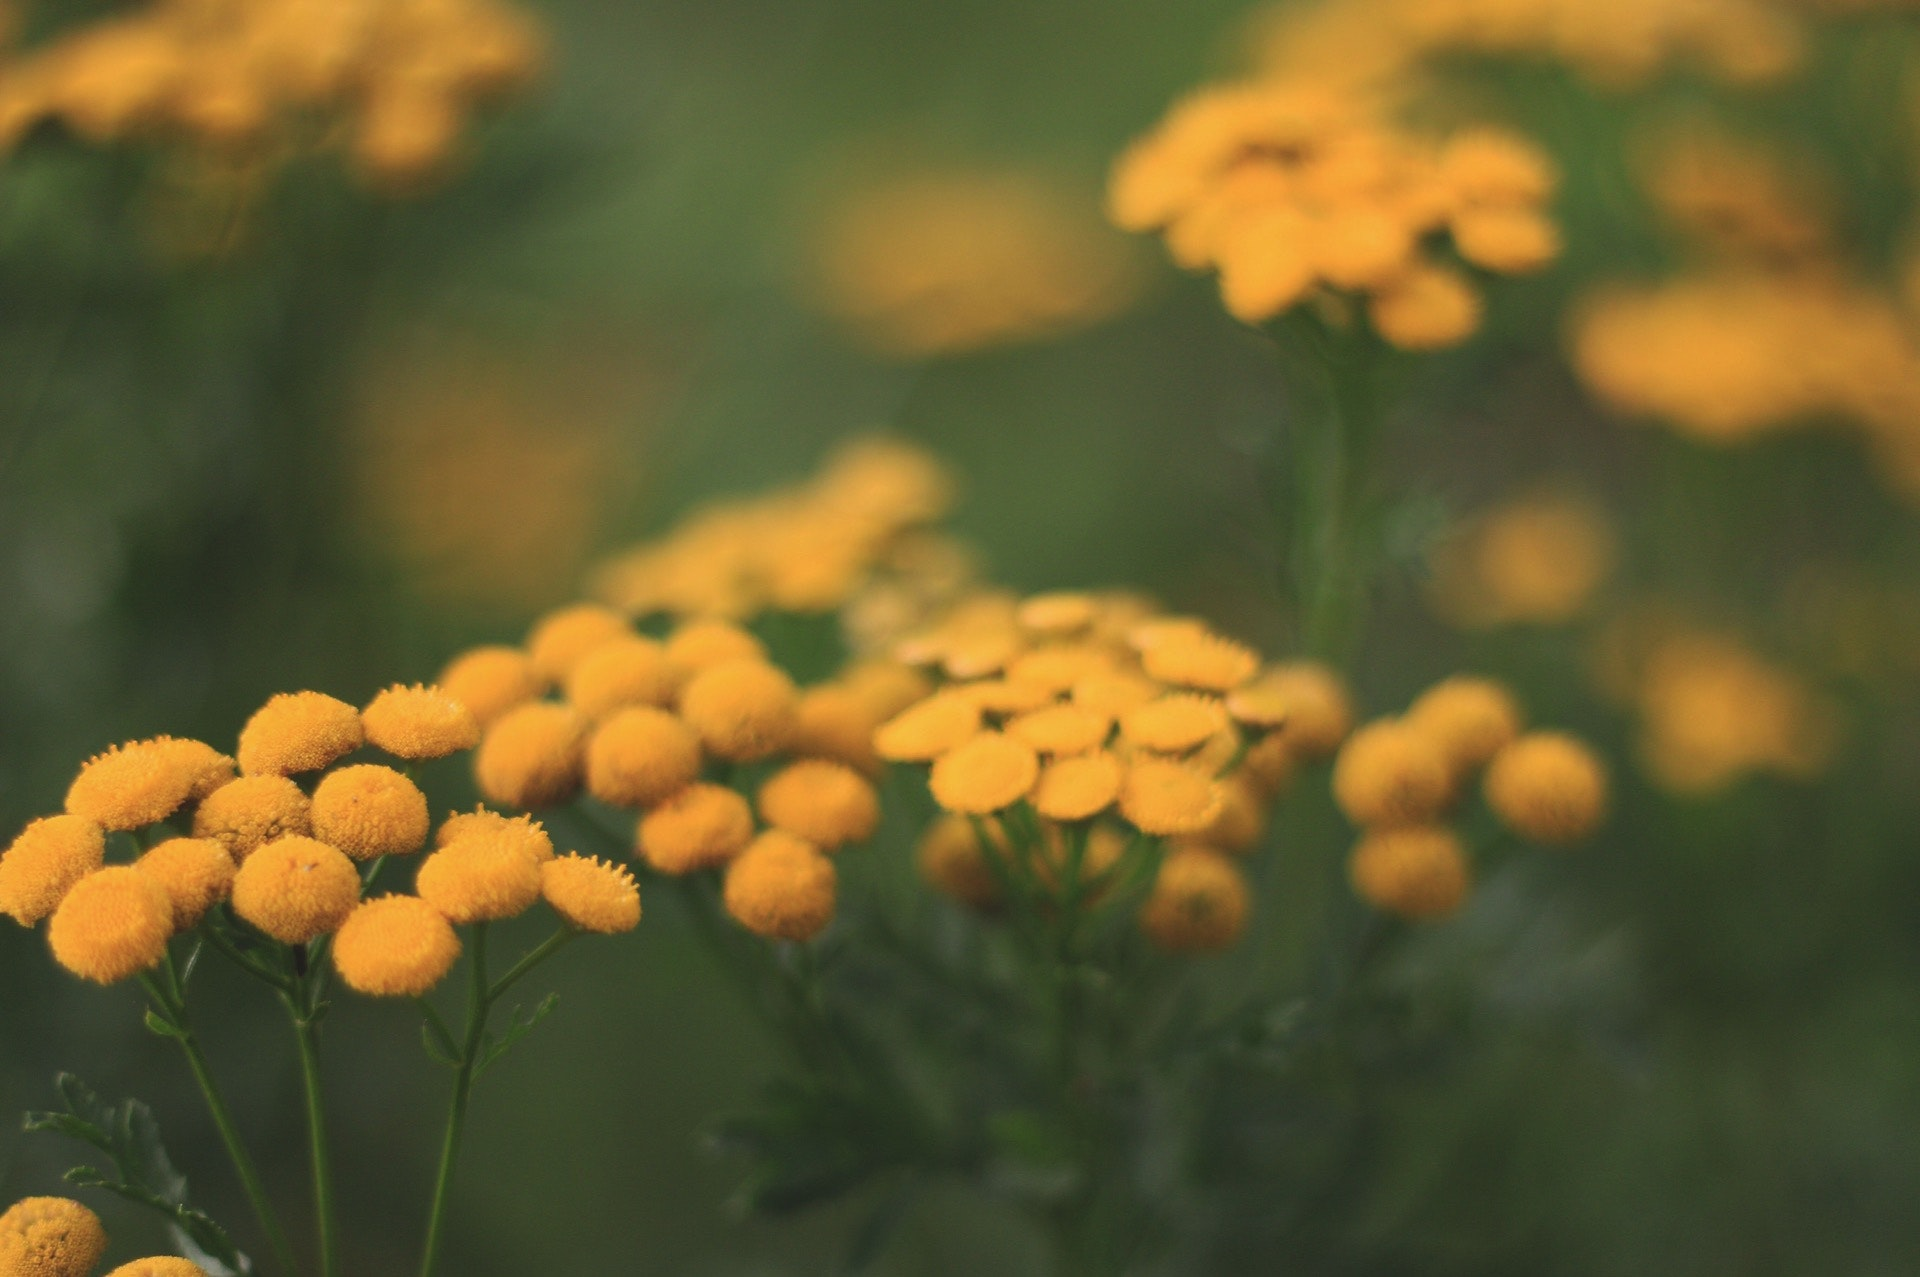 Selective Focus Photography Of Yellow Petaled Flower: Selective-focus Photography Of Yellow Flowers · Free Stock